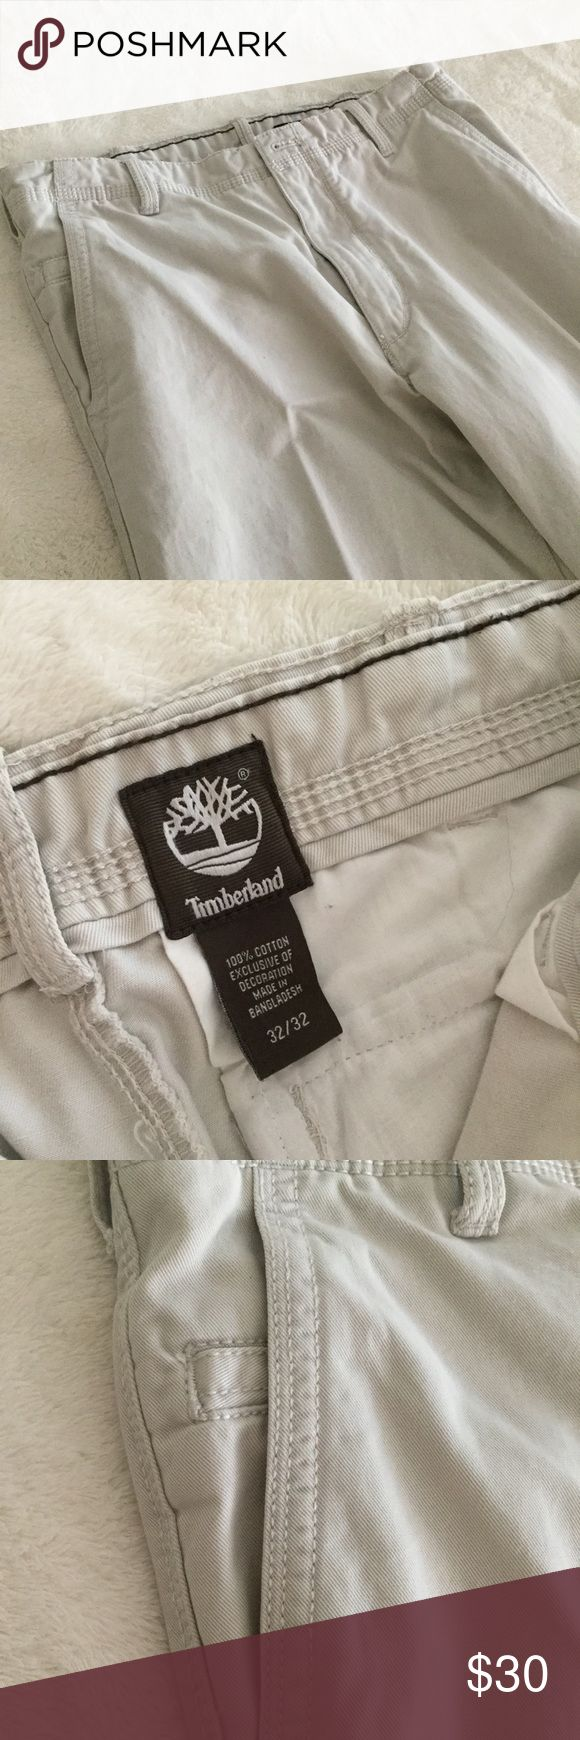 Timberland men's khaki pants Excellent condition. No wear or tear. Men's Timberland pants. Size 32x32. Tan Timberland Pants Chinos & Khakis